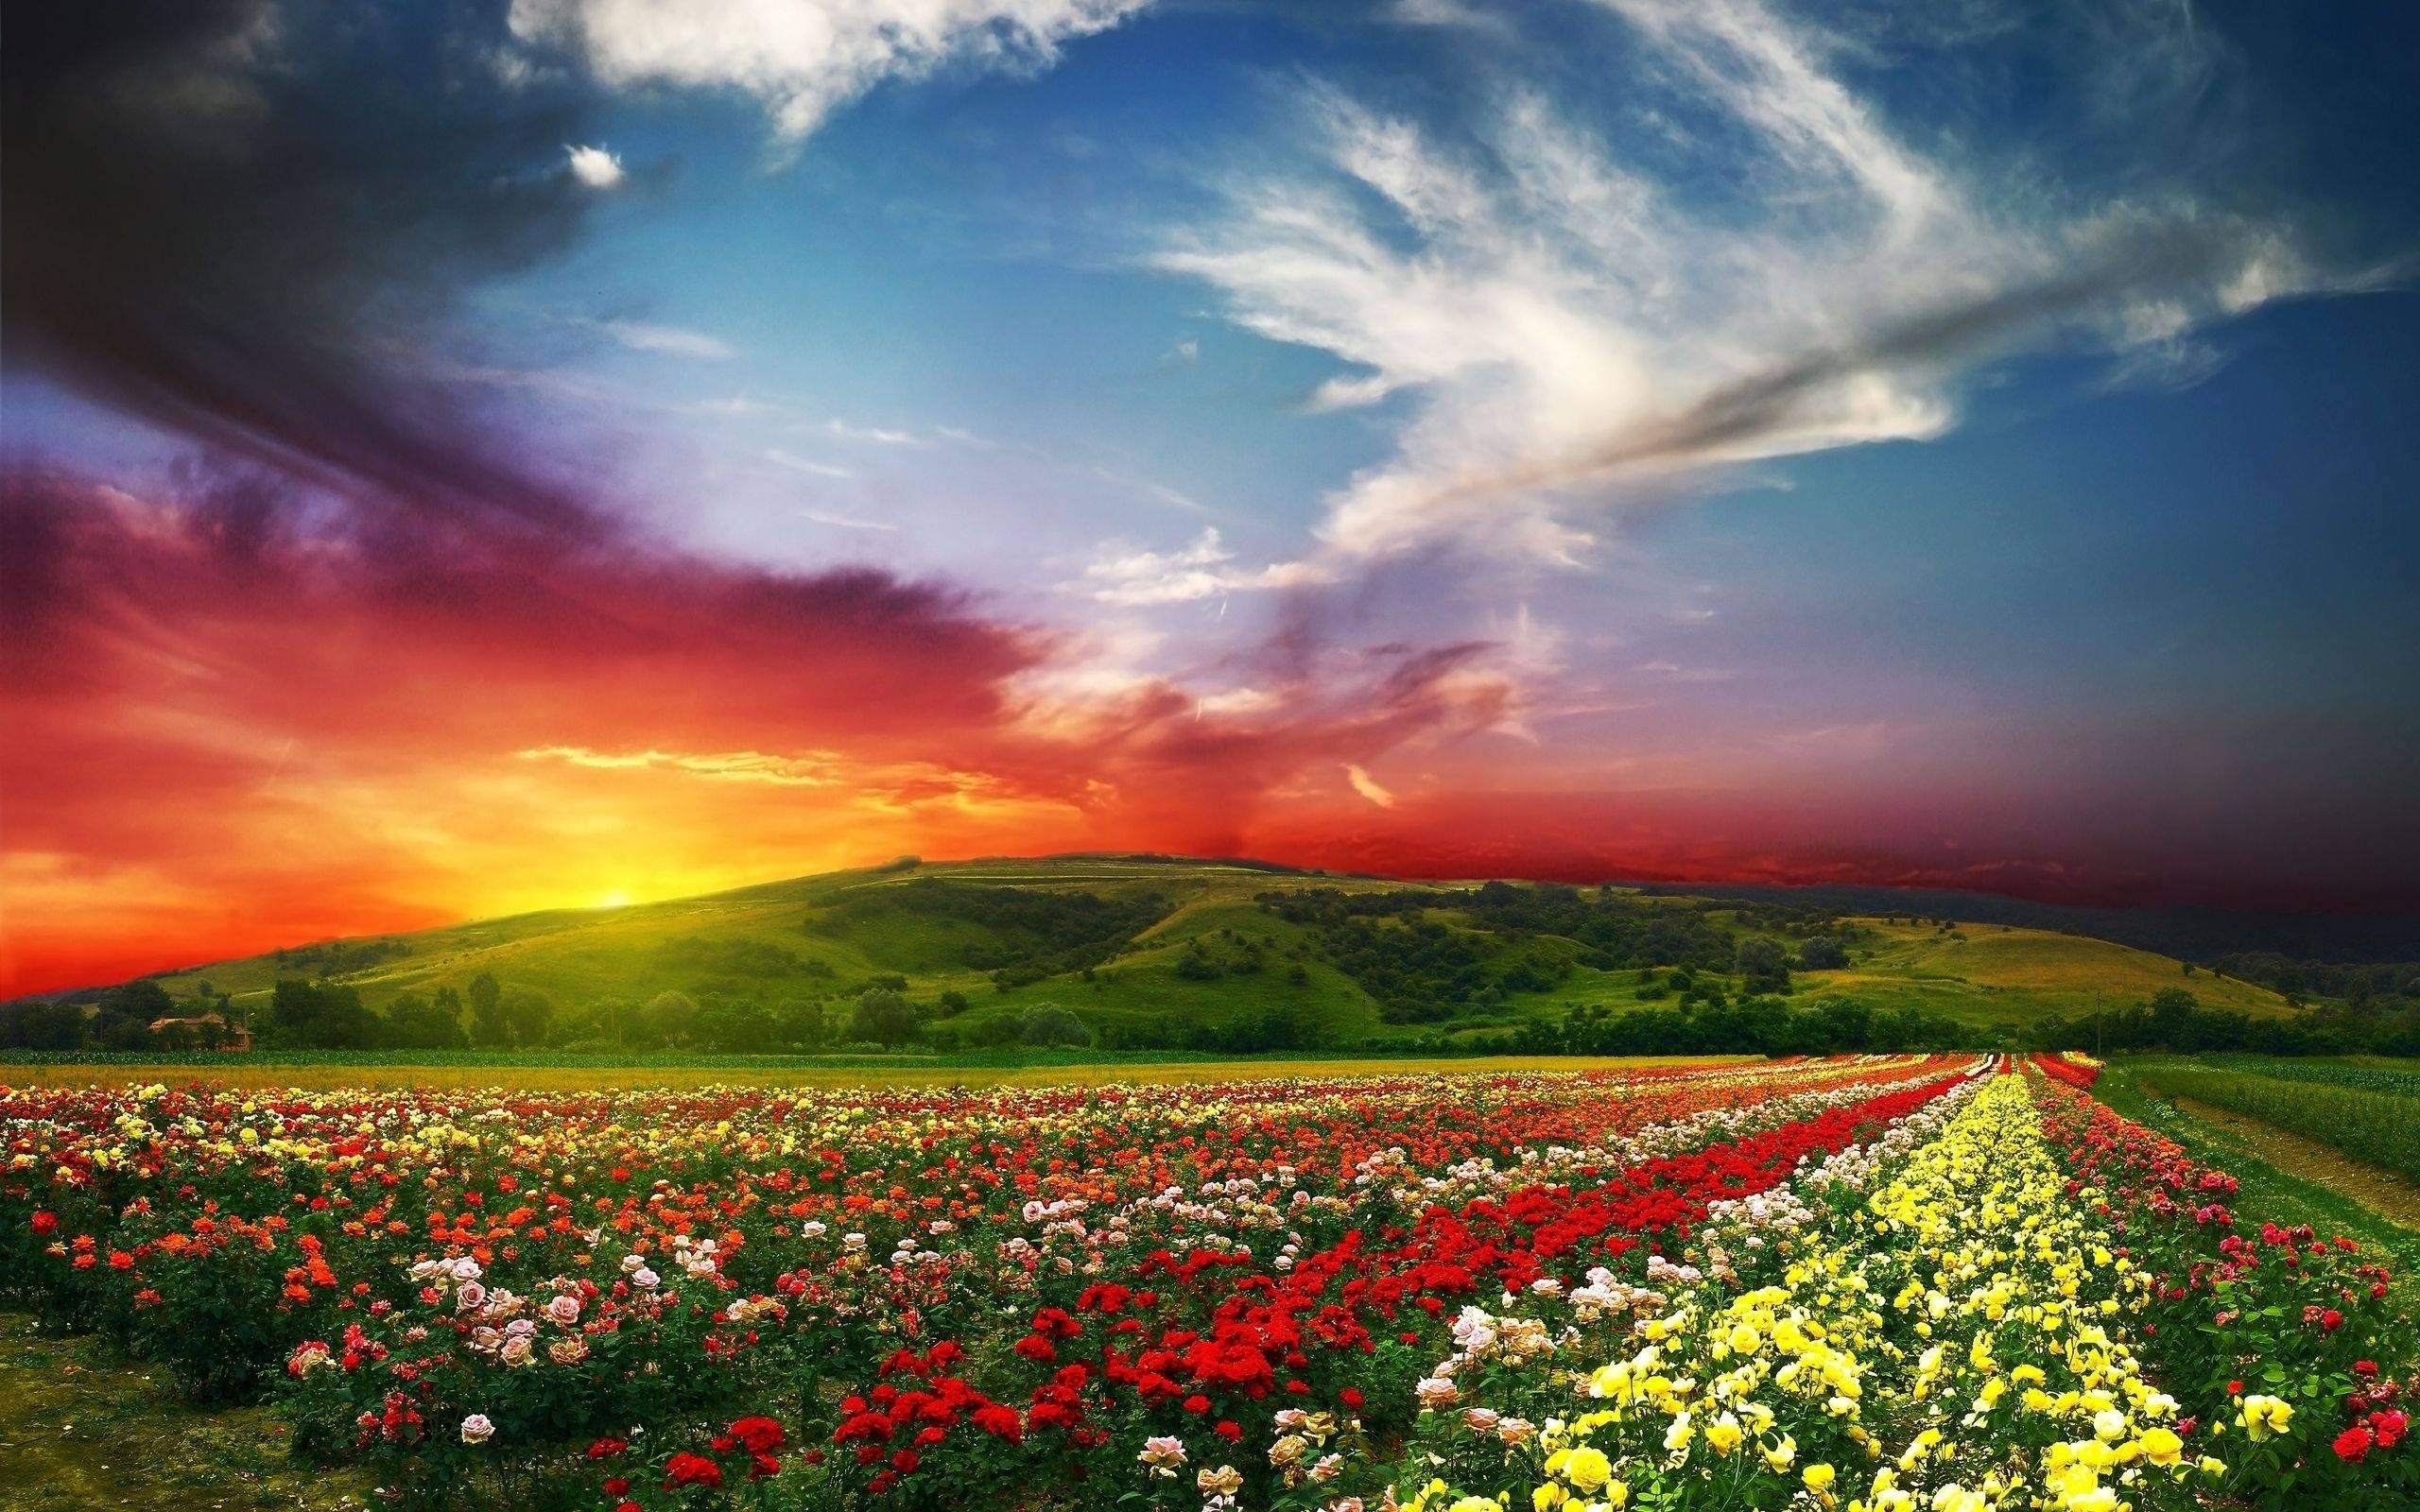 Res: 2560x1600, Wallpaper.wiki Best Nature Wallpapers Hd Free Download PIC .